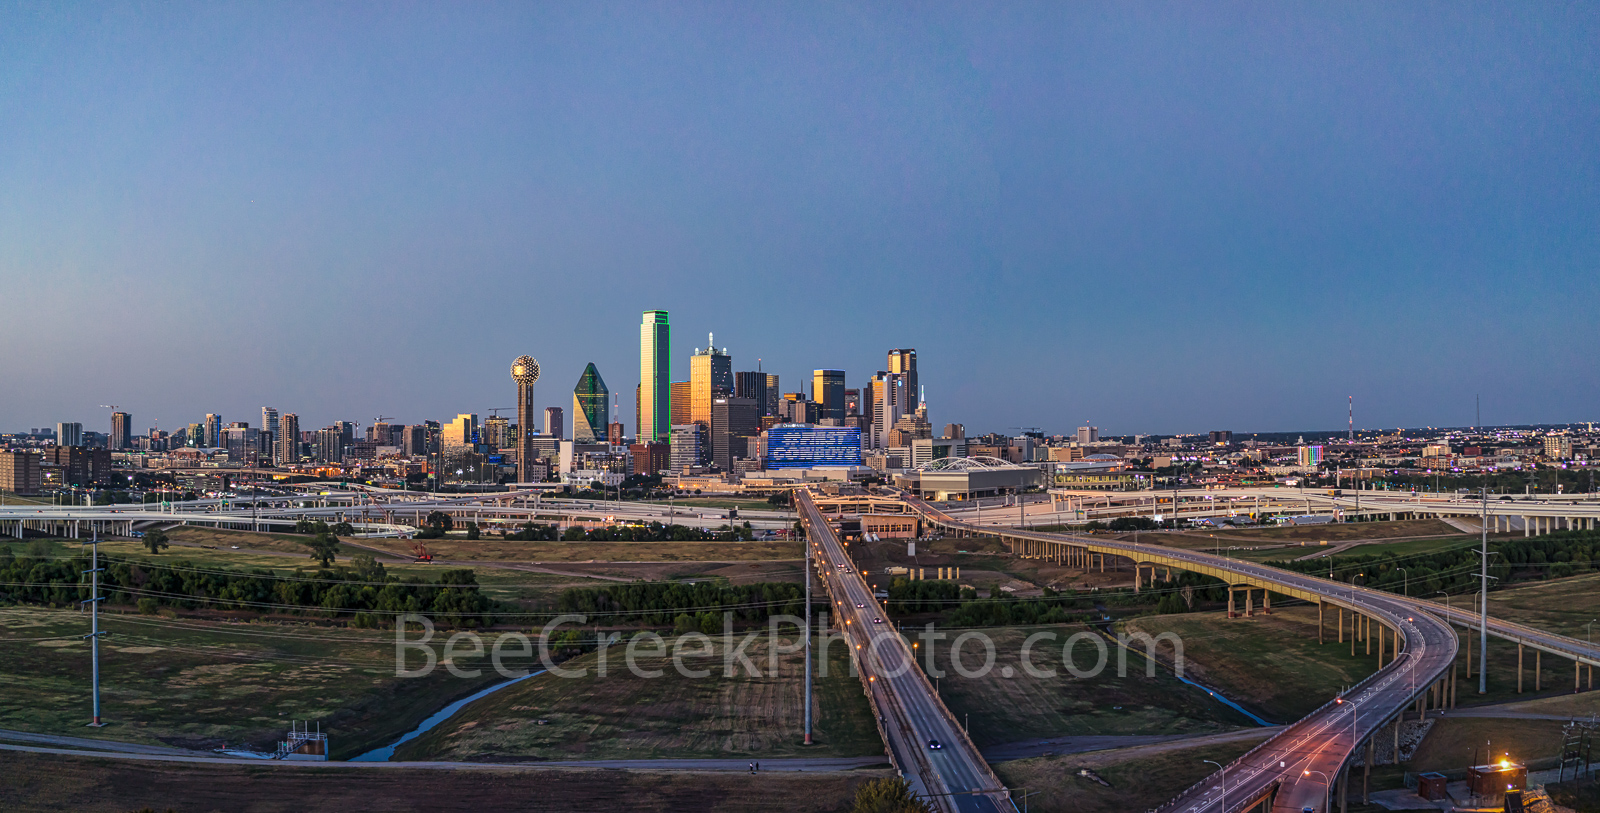 Dallas, drone, aerial, image, downtown, pano, panorama, twilight, blue hour, cityscape, high rise, building, Trinity river, freeway, sunset, photo